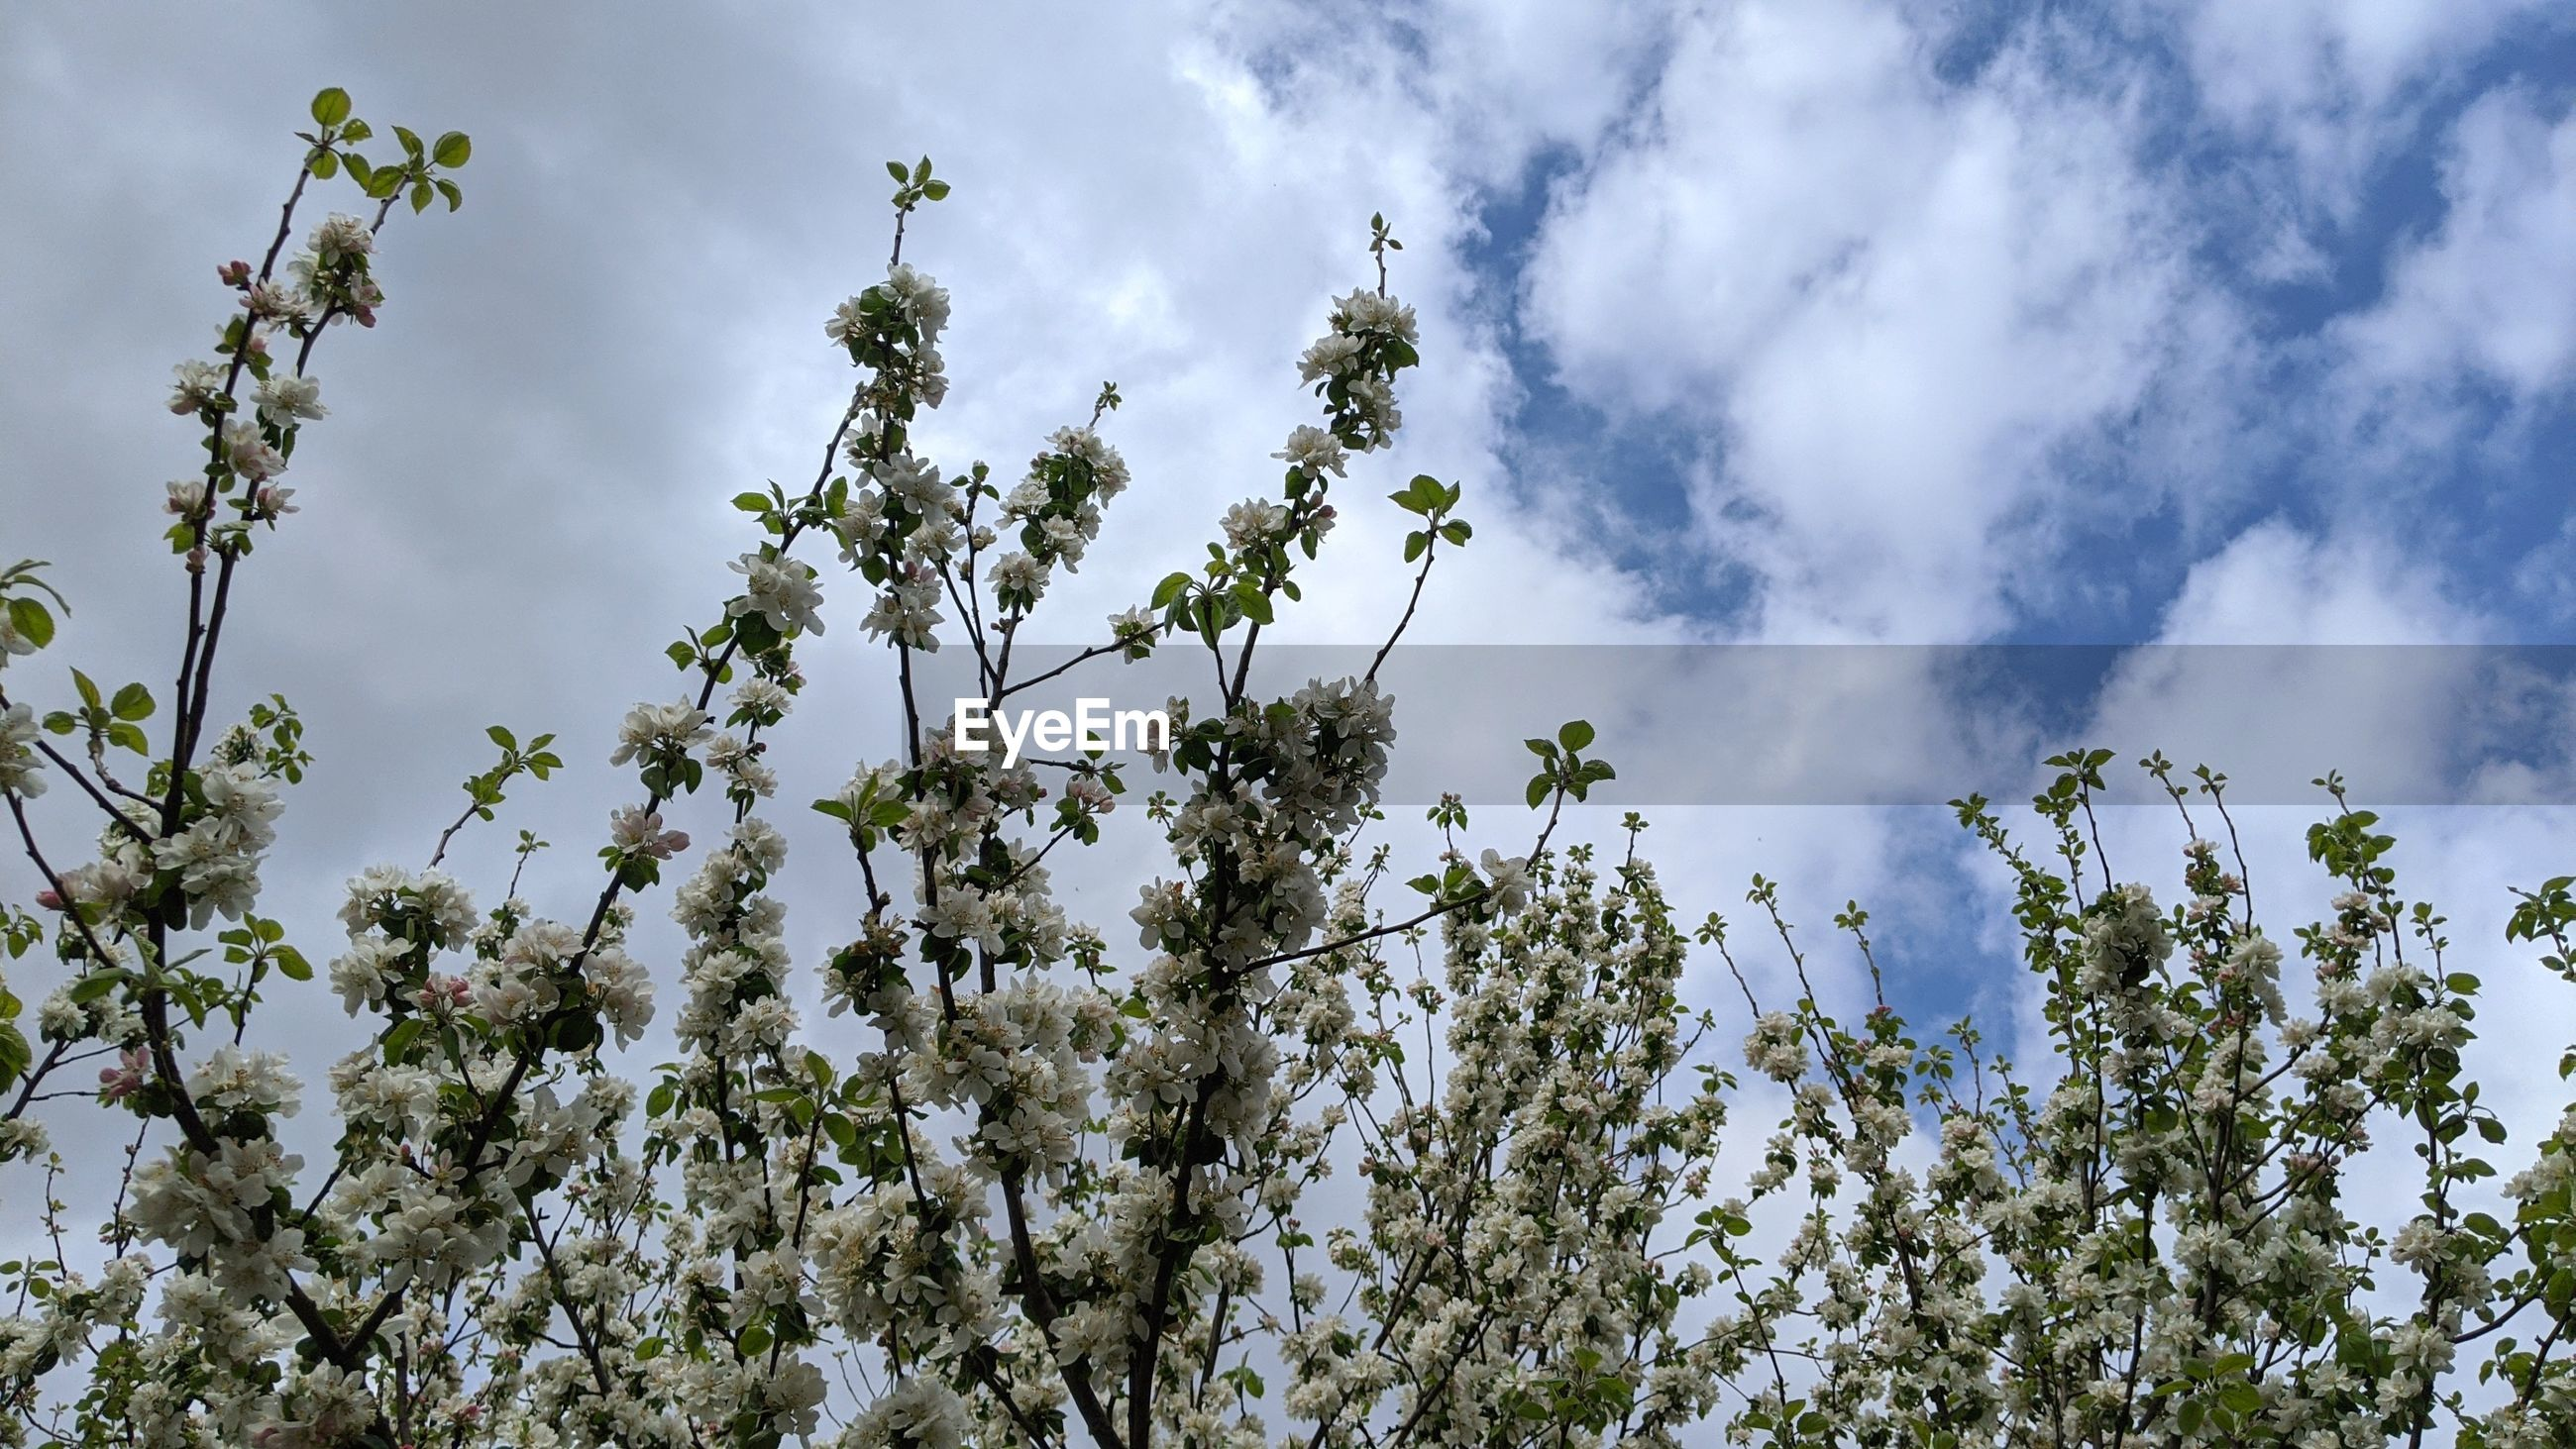 nature, plant, sky, cloud, tree, sunlight, flower, beauty in nature, low angle view, growth, blossom, grass, meadow, no people, branch, outdoors, day, flowering plant, leaf, environment, freshness, springtime, spring, green, tranquility, land, scenics - nature, landscape, wildflower